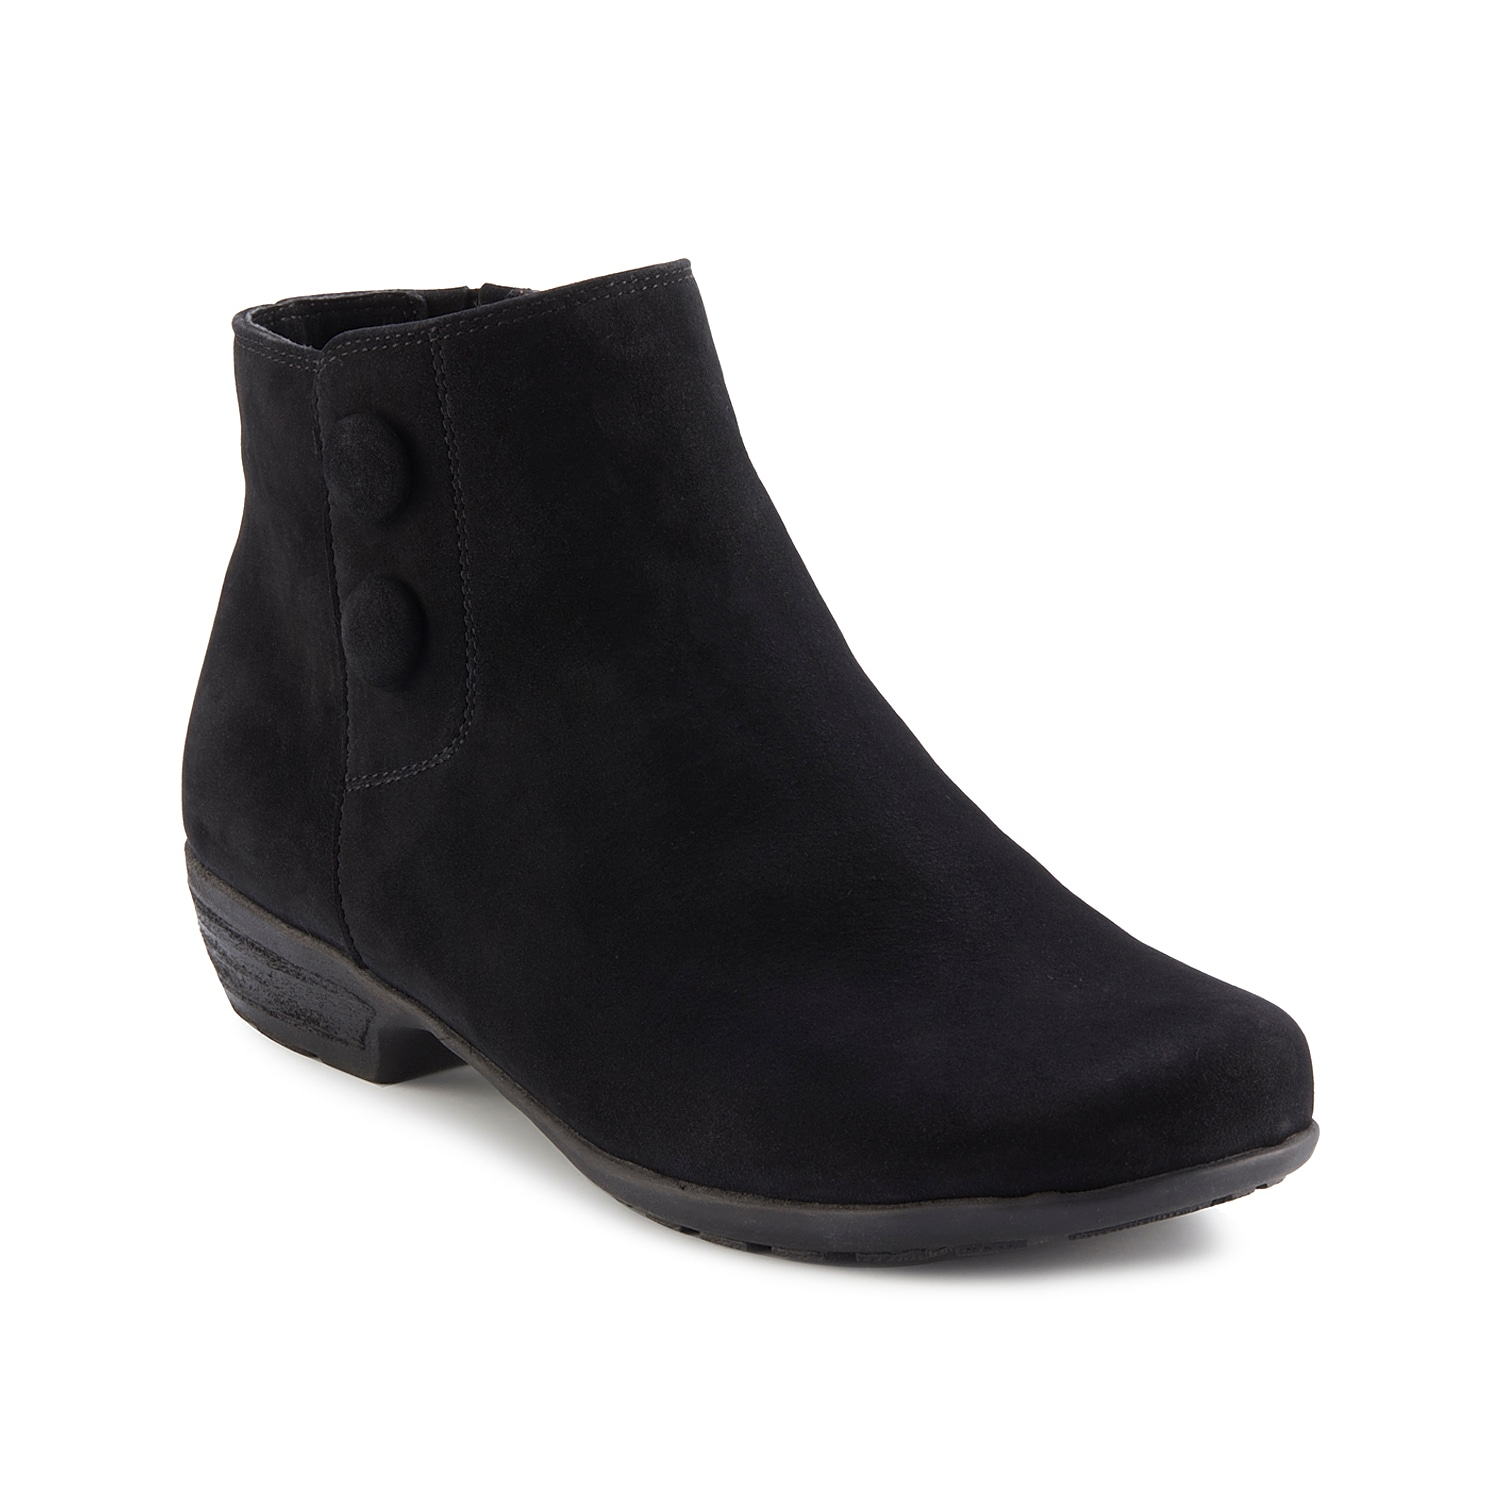 Once you zip into the Janette bootie from Walking Cradles, you\\\'ll never want to take them off. This ankle boot features a Tiny Pillows footbed to keep every step cushioned.Click here for Boot Measuring Guide.